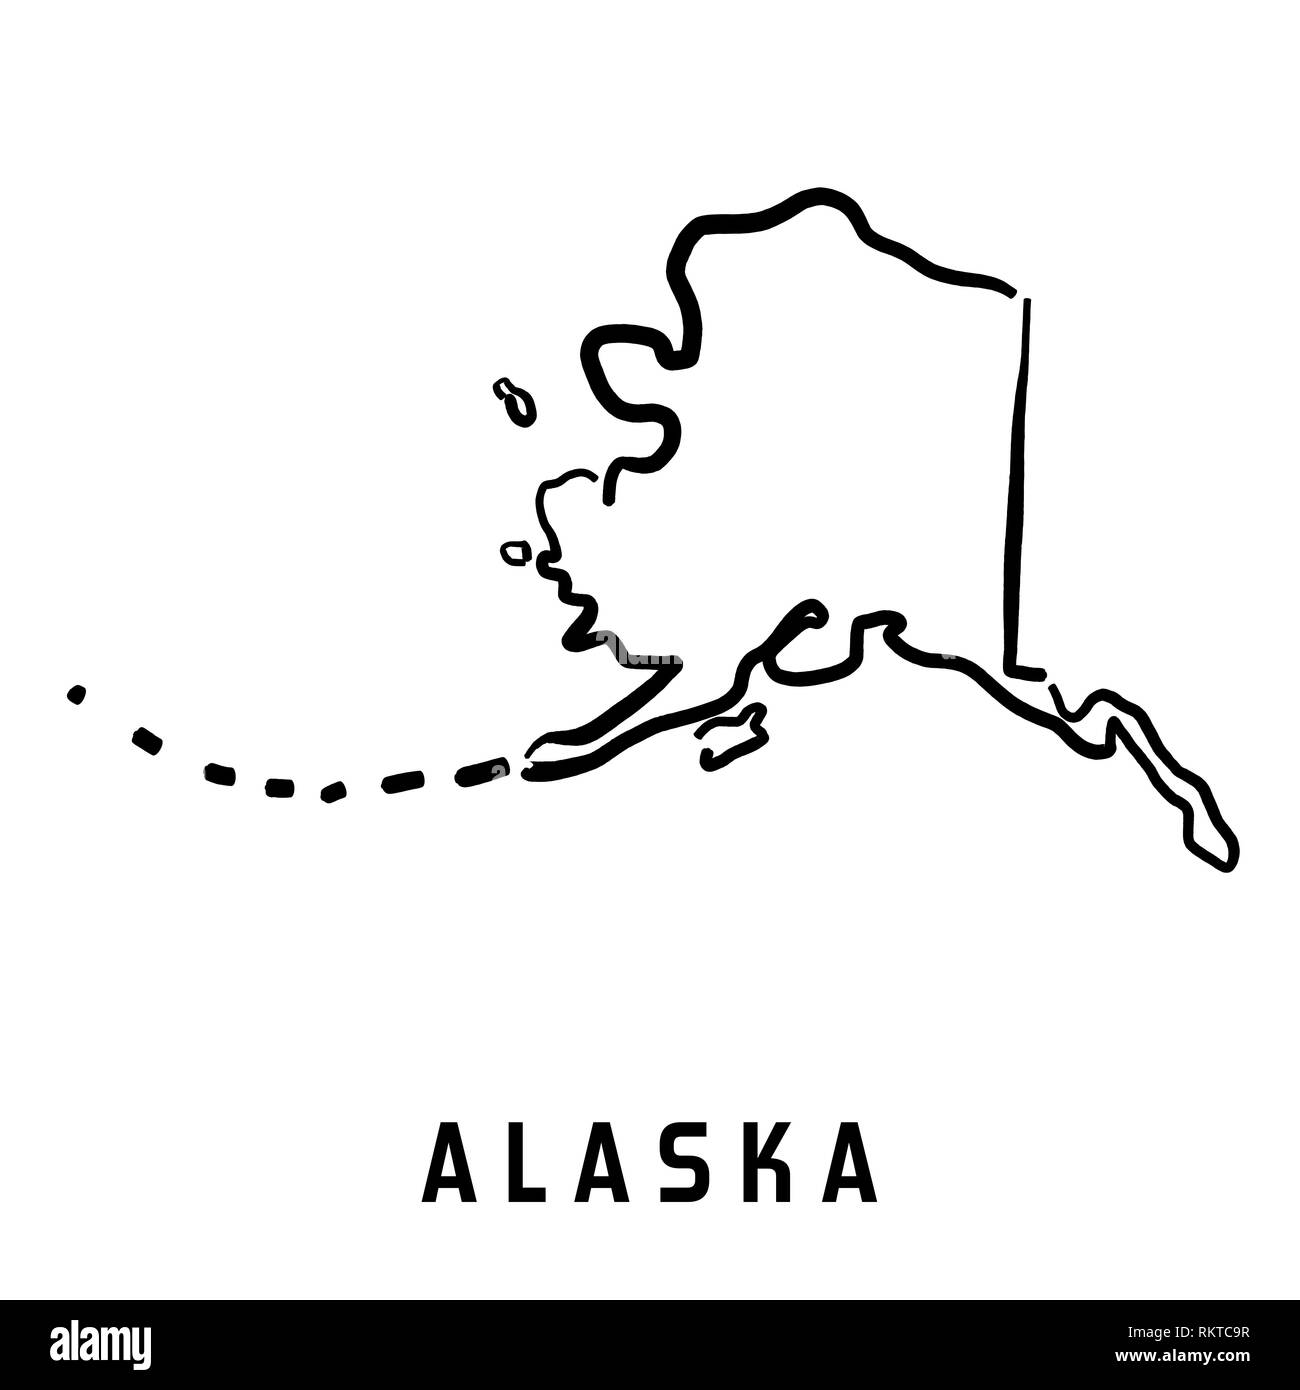 Alaska Simple Logo State Map Outline Smooth Simplified Us State - Simple-map-of-us